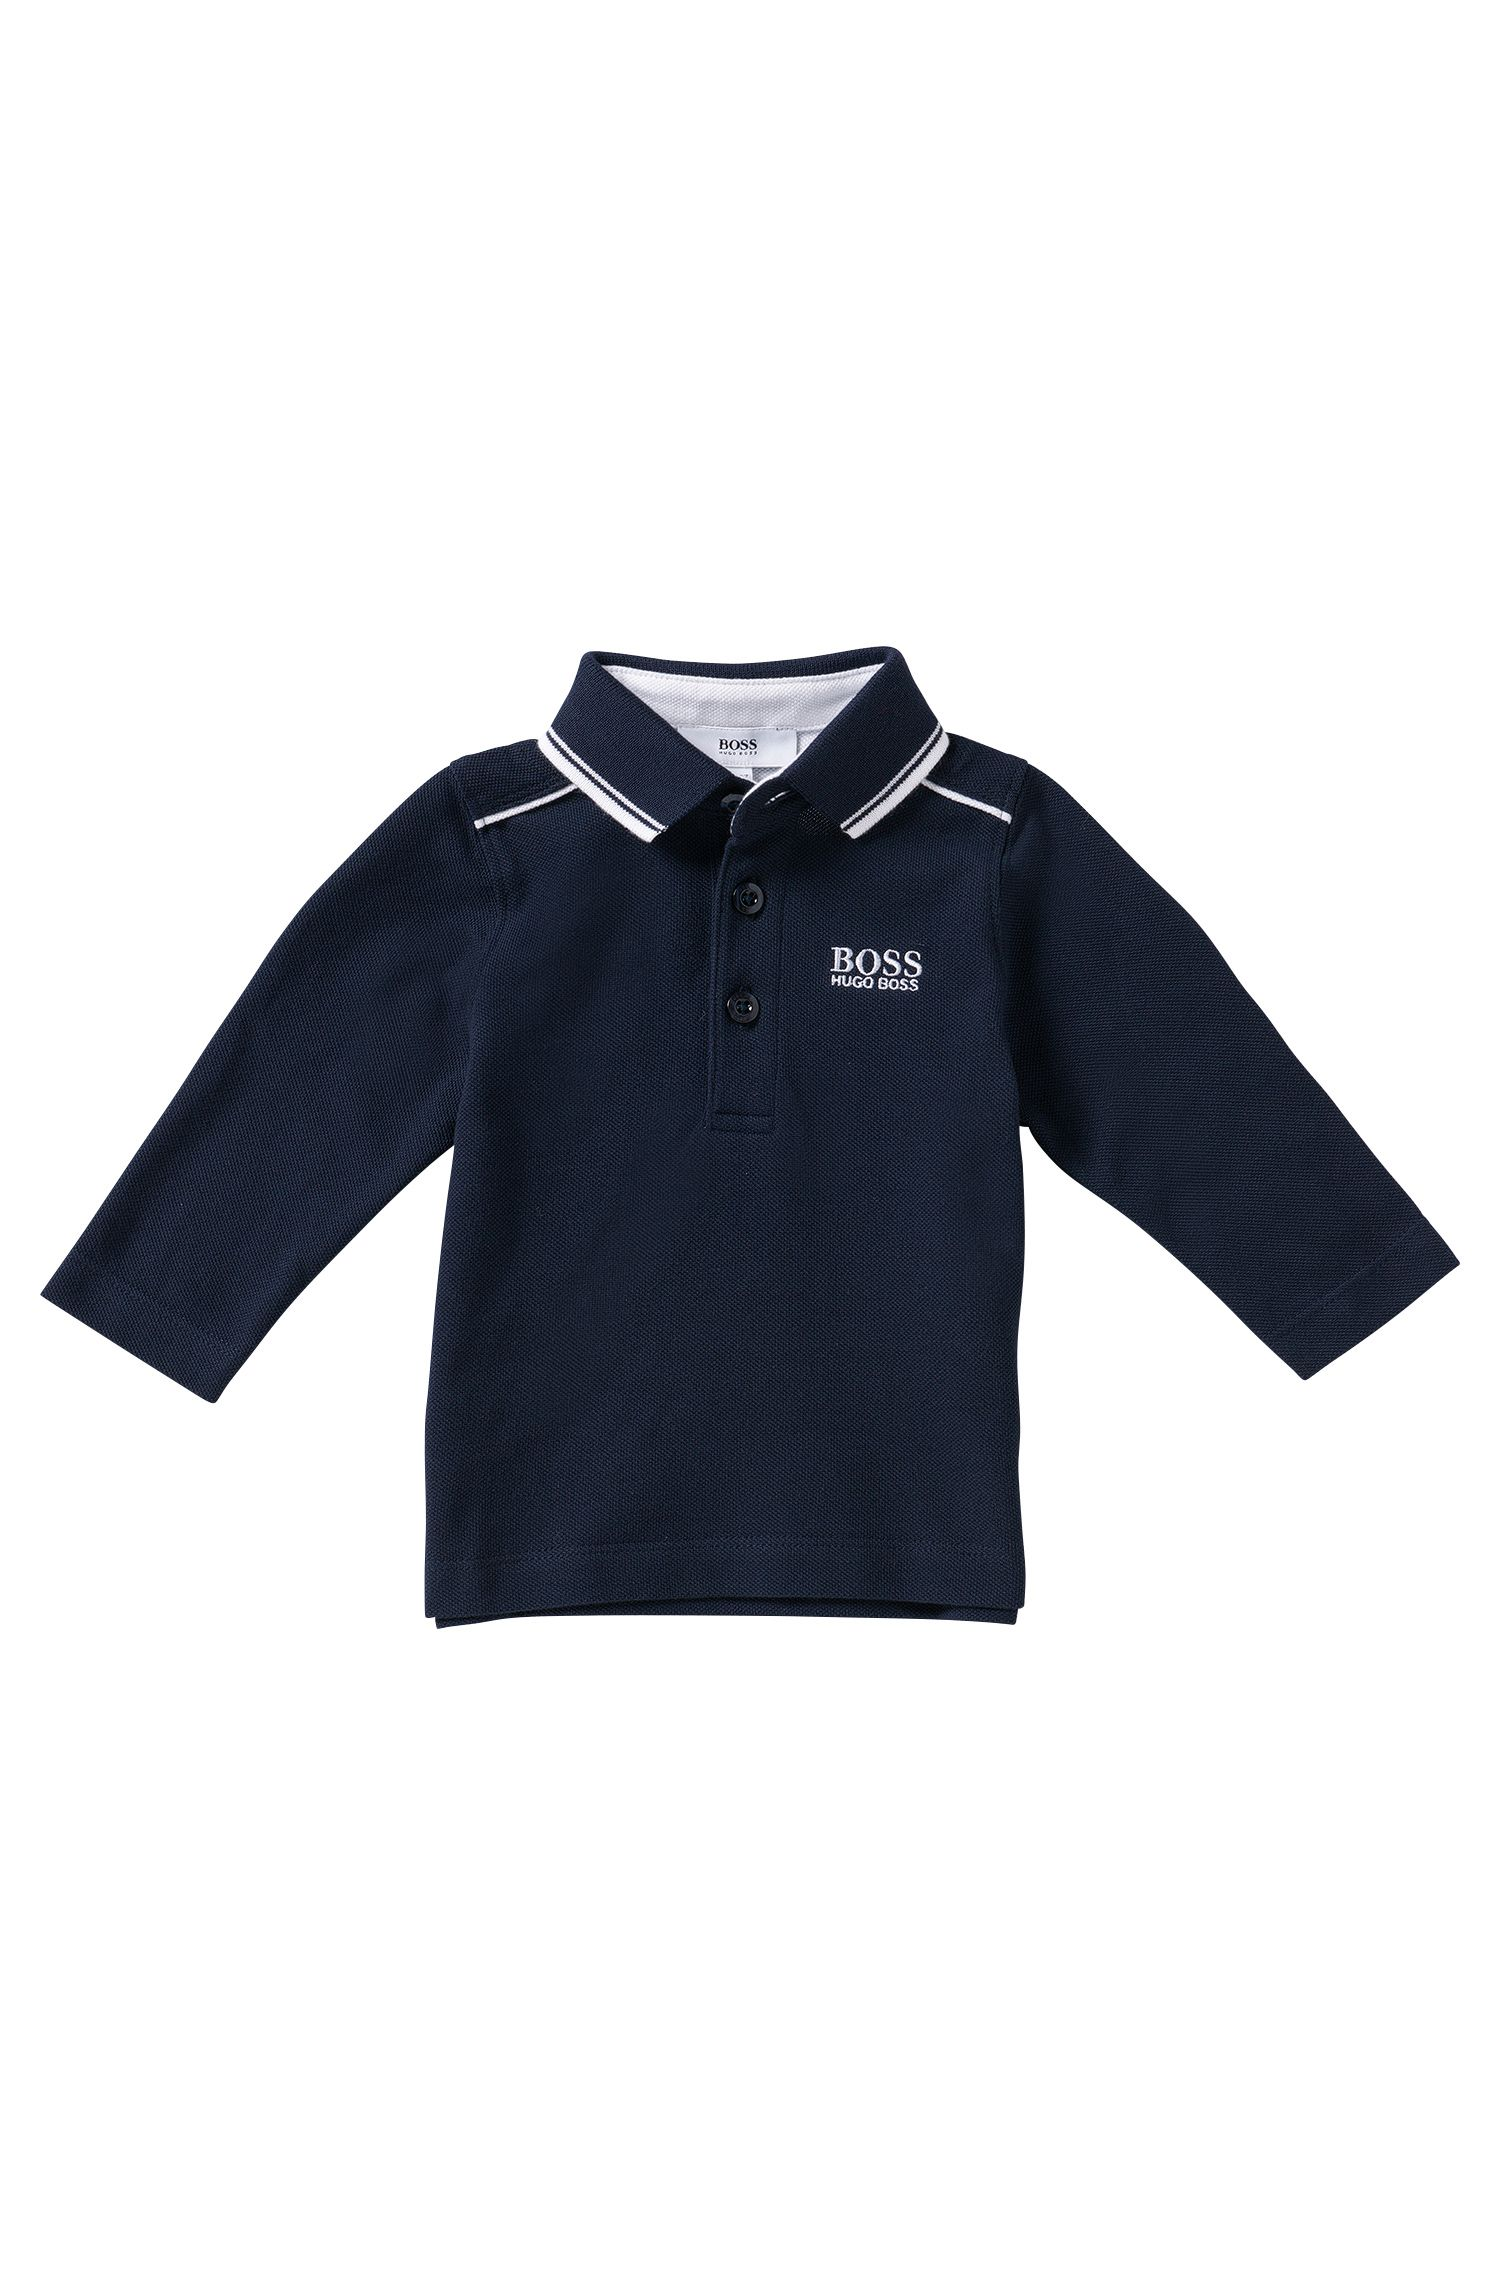 'J05399' | Toddler  Cotton Pique Polo Shirt